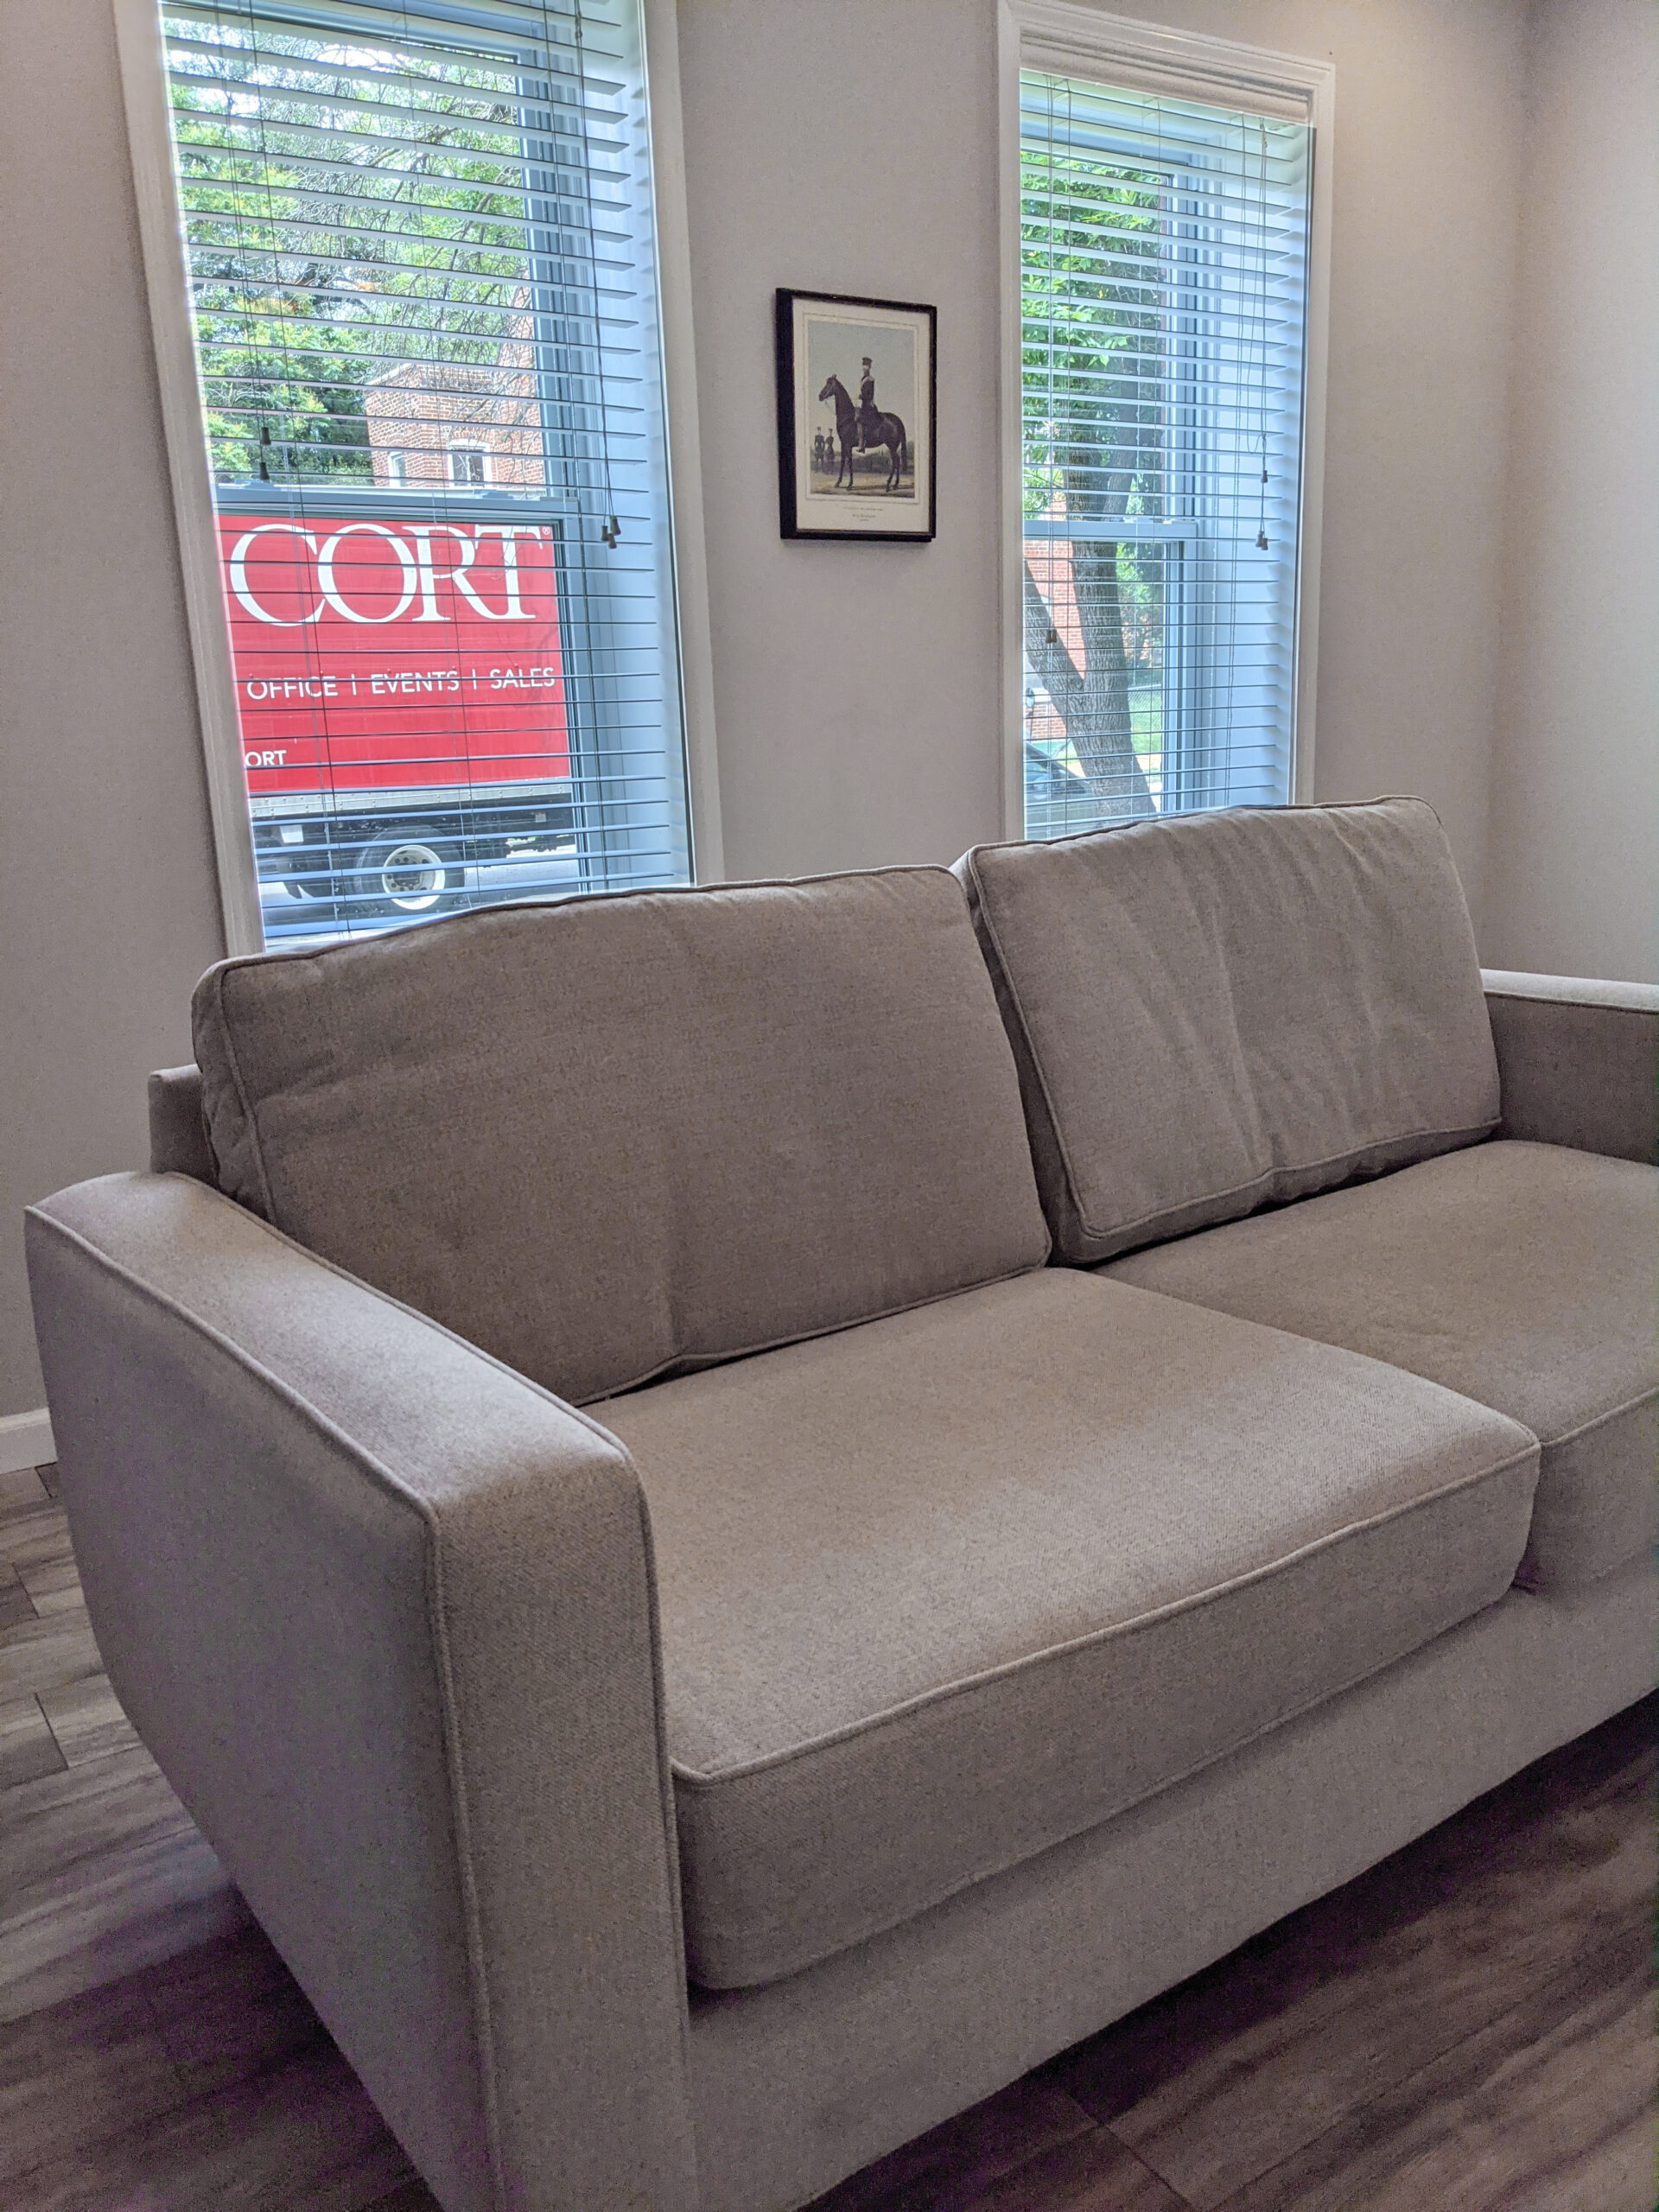 A used couch from the CORT outlet shortly after delivery, pictured with the CORT truck shown outside the window of the home.